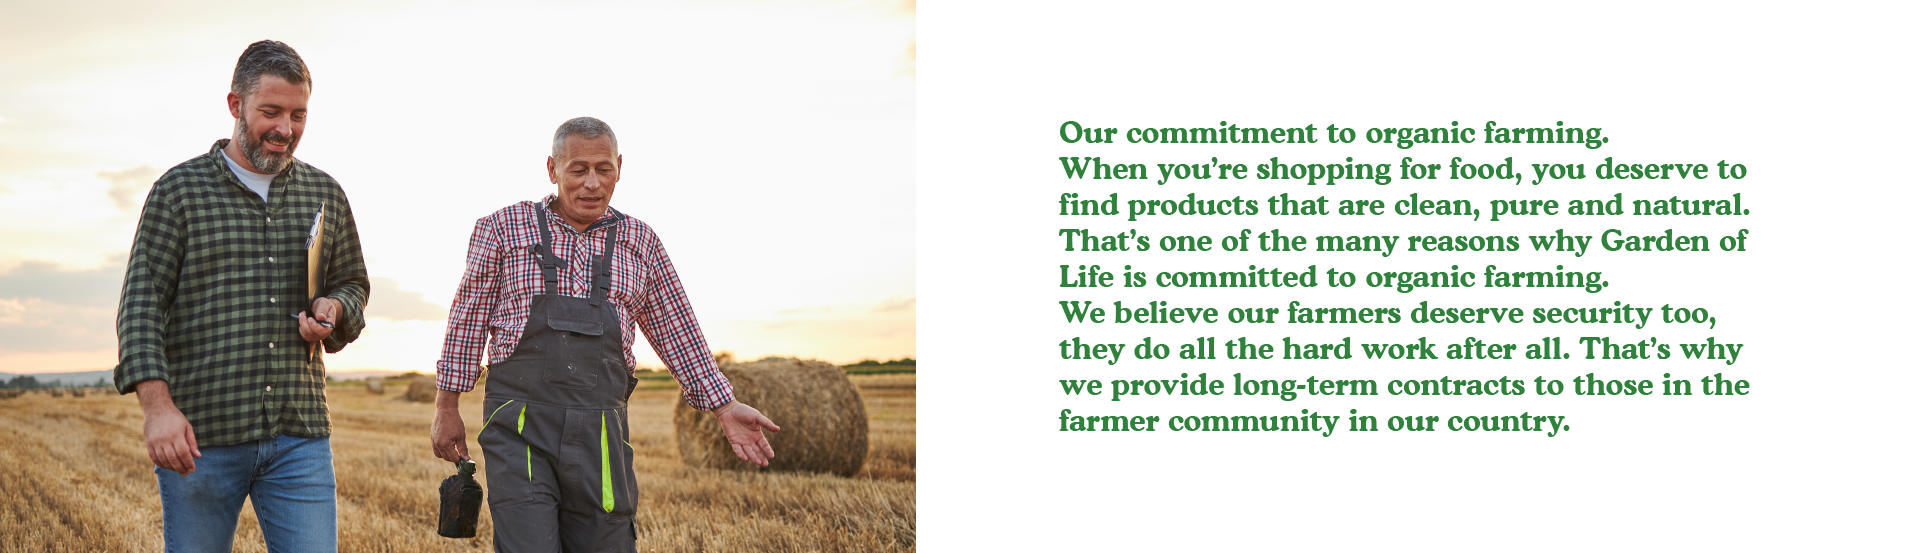 Our commitment to organic farming